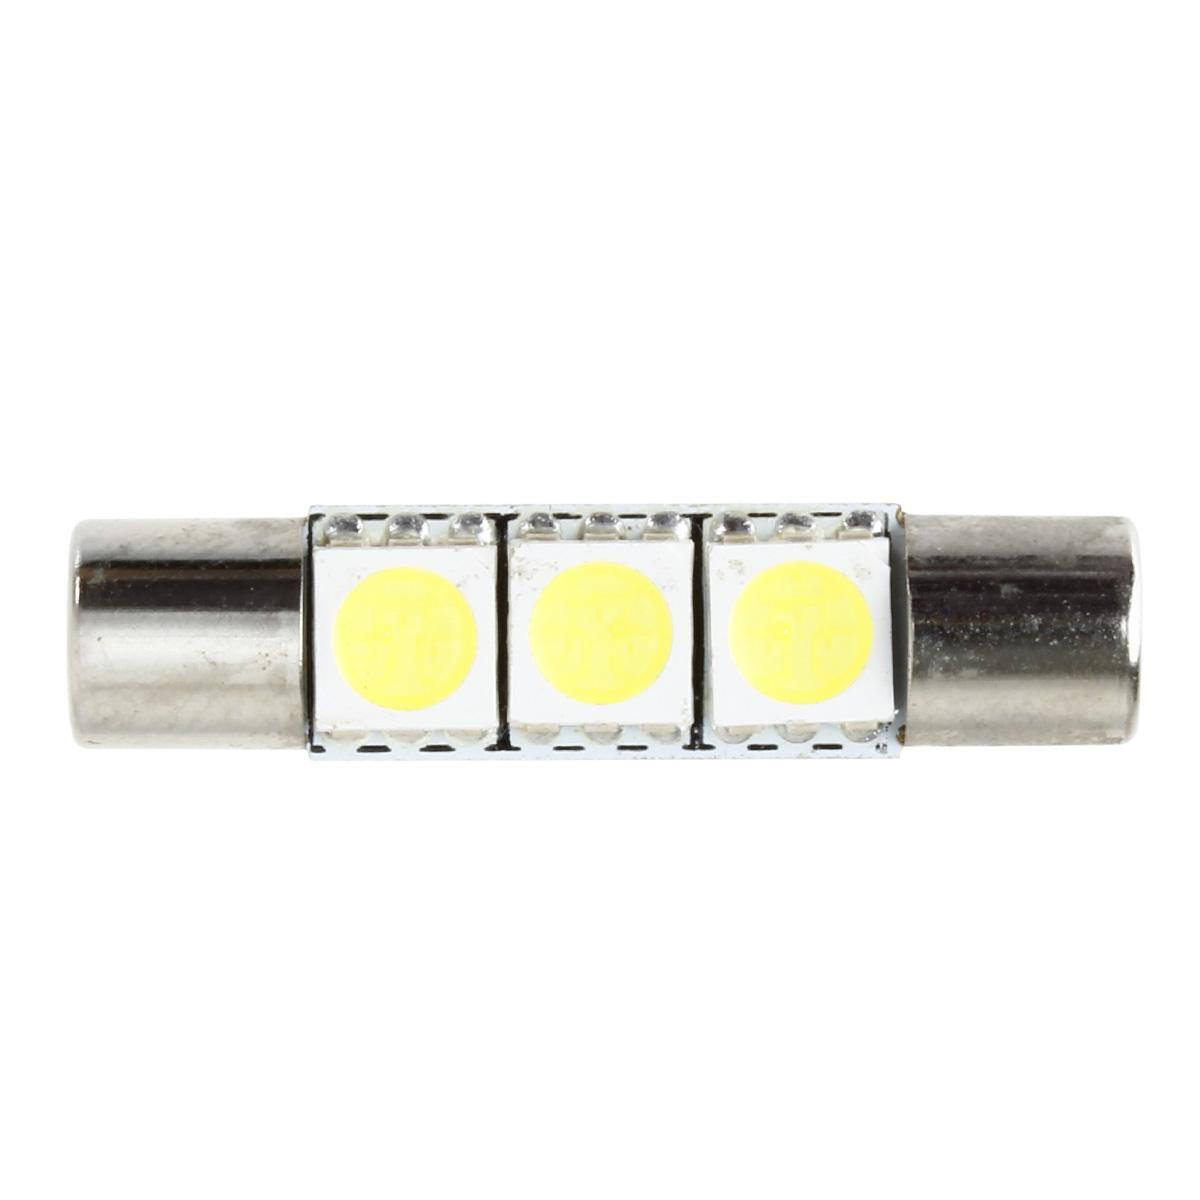 Vanity Light For Car Visor : 4pcs White 5050 3-LED Car Interior Vanity Mirror Lights Sun Visor Lamps 12V eBay